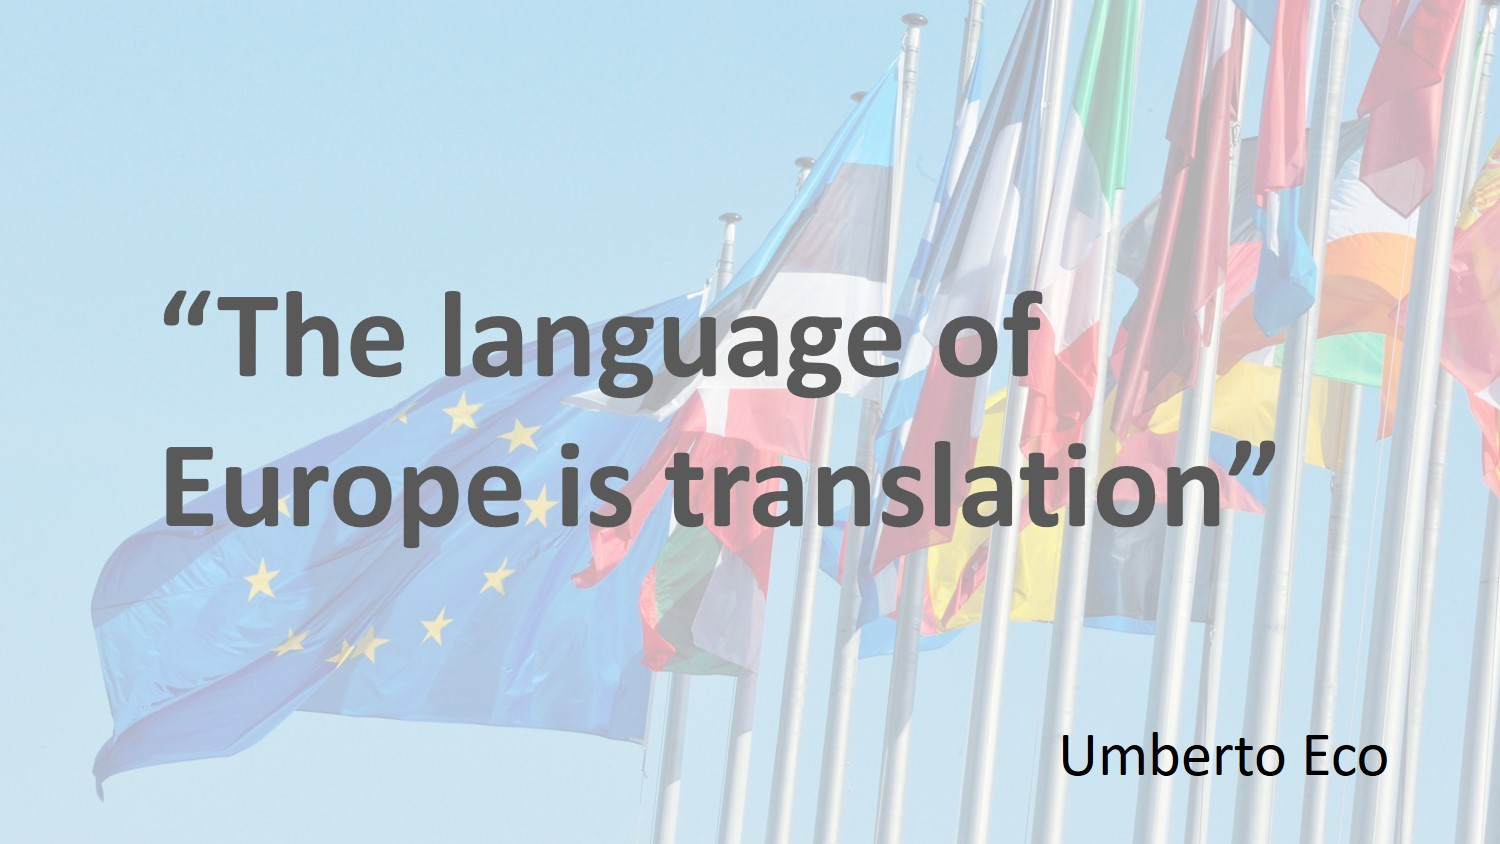 Umberto Eco's quotation 'The language of Europe is translation' with the European flag and some national flags in the background